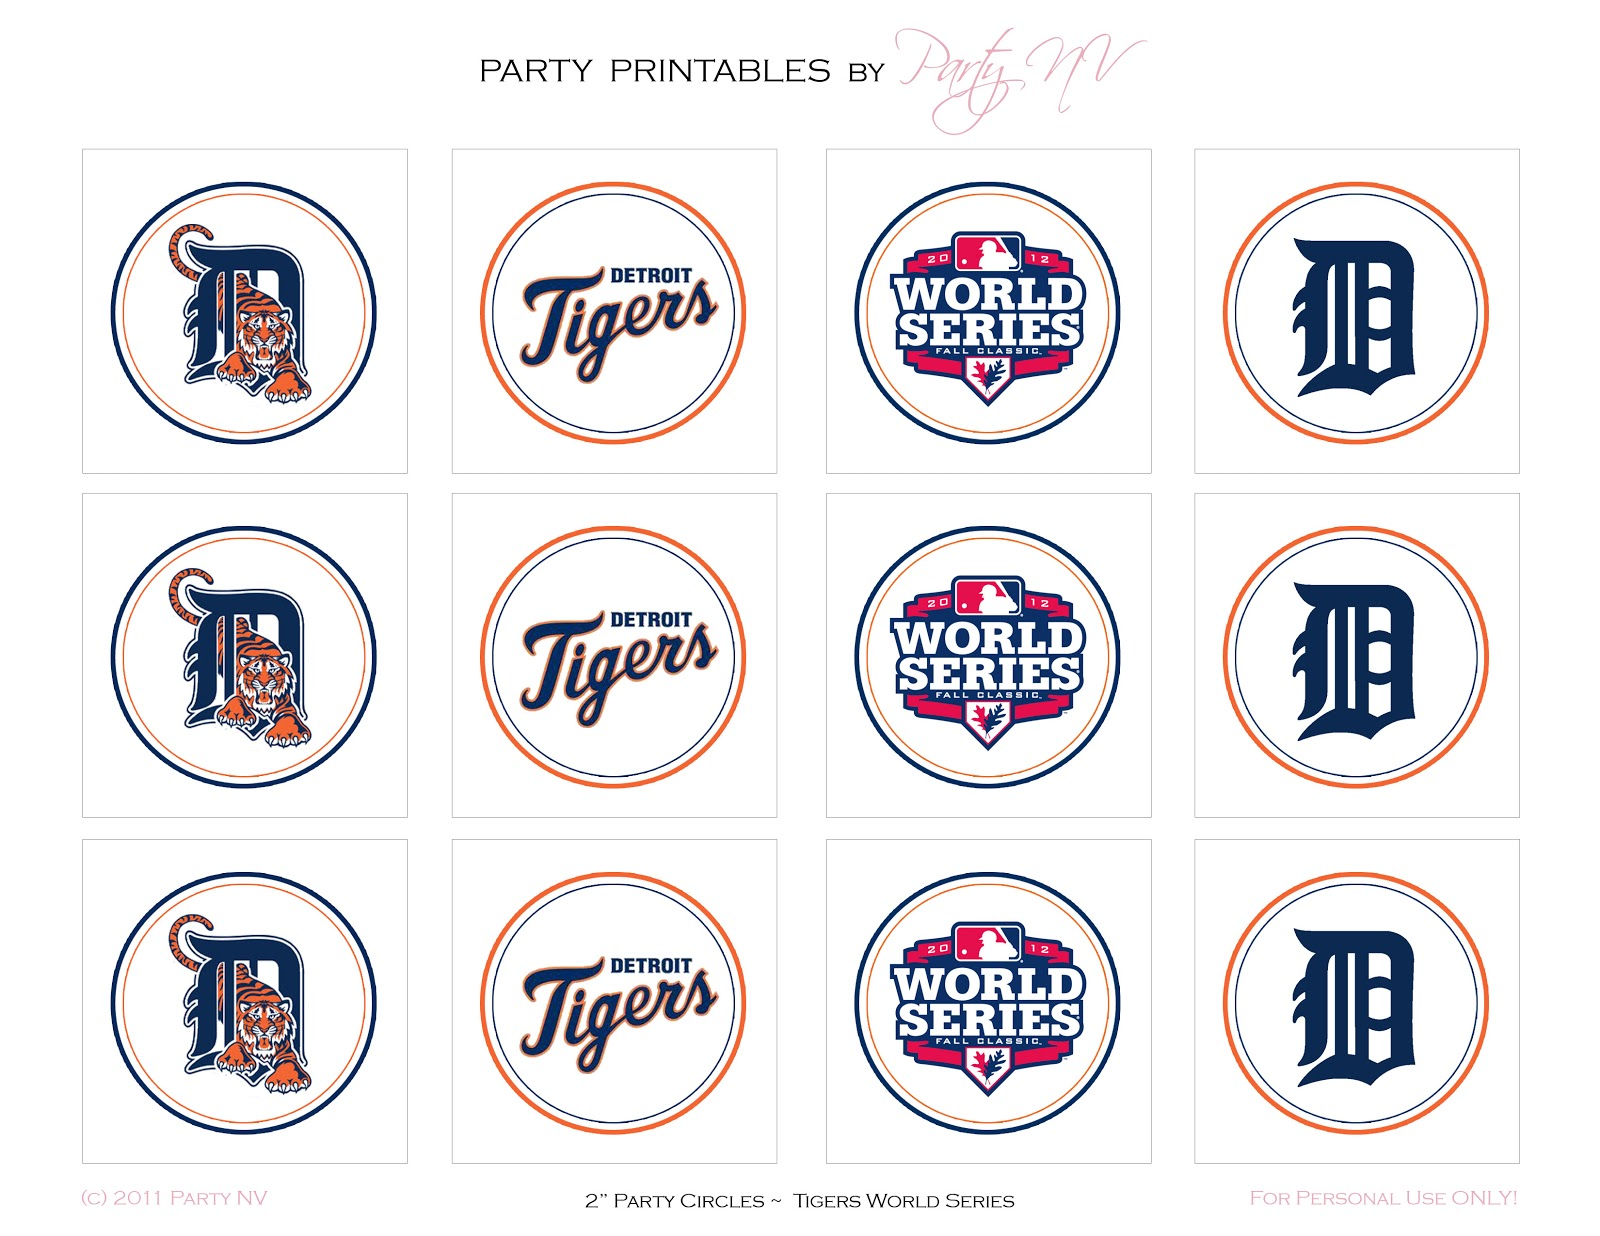 photograph regarding Printable Detroit Tigers Schedule referred to as Bash NV: Freebie Friday Detroit Tigers Printables